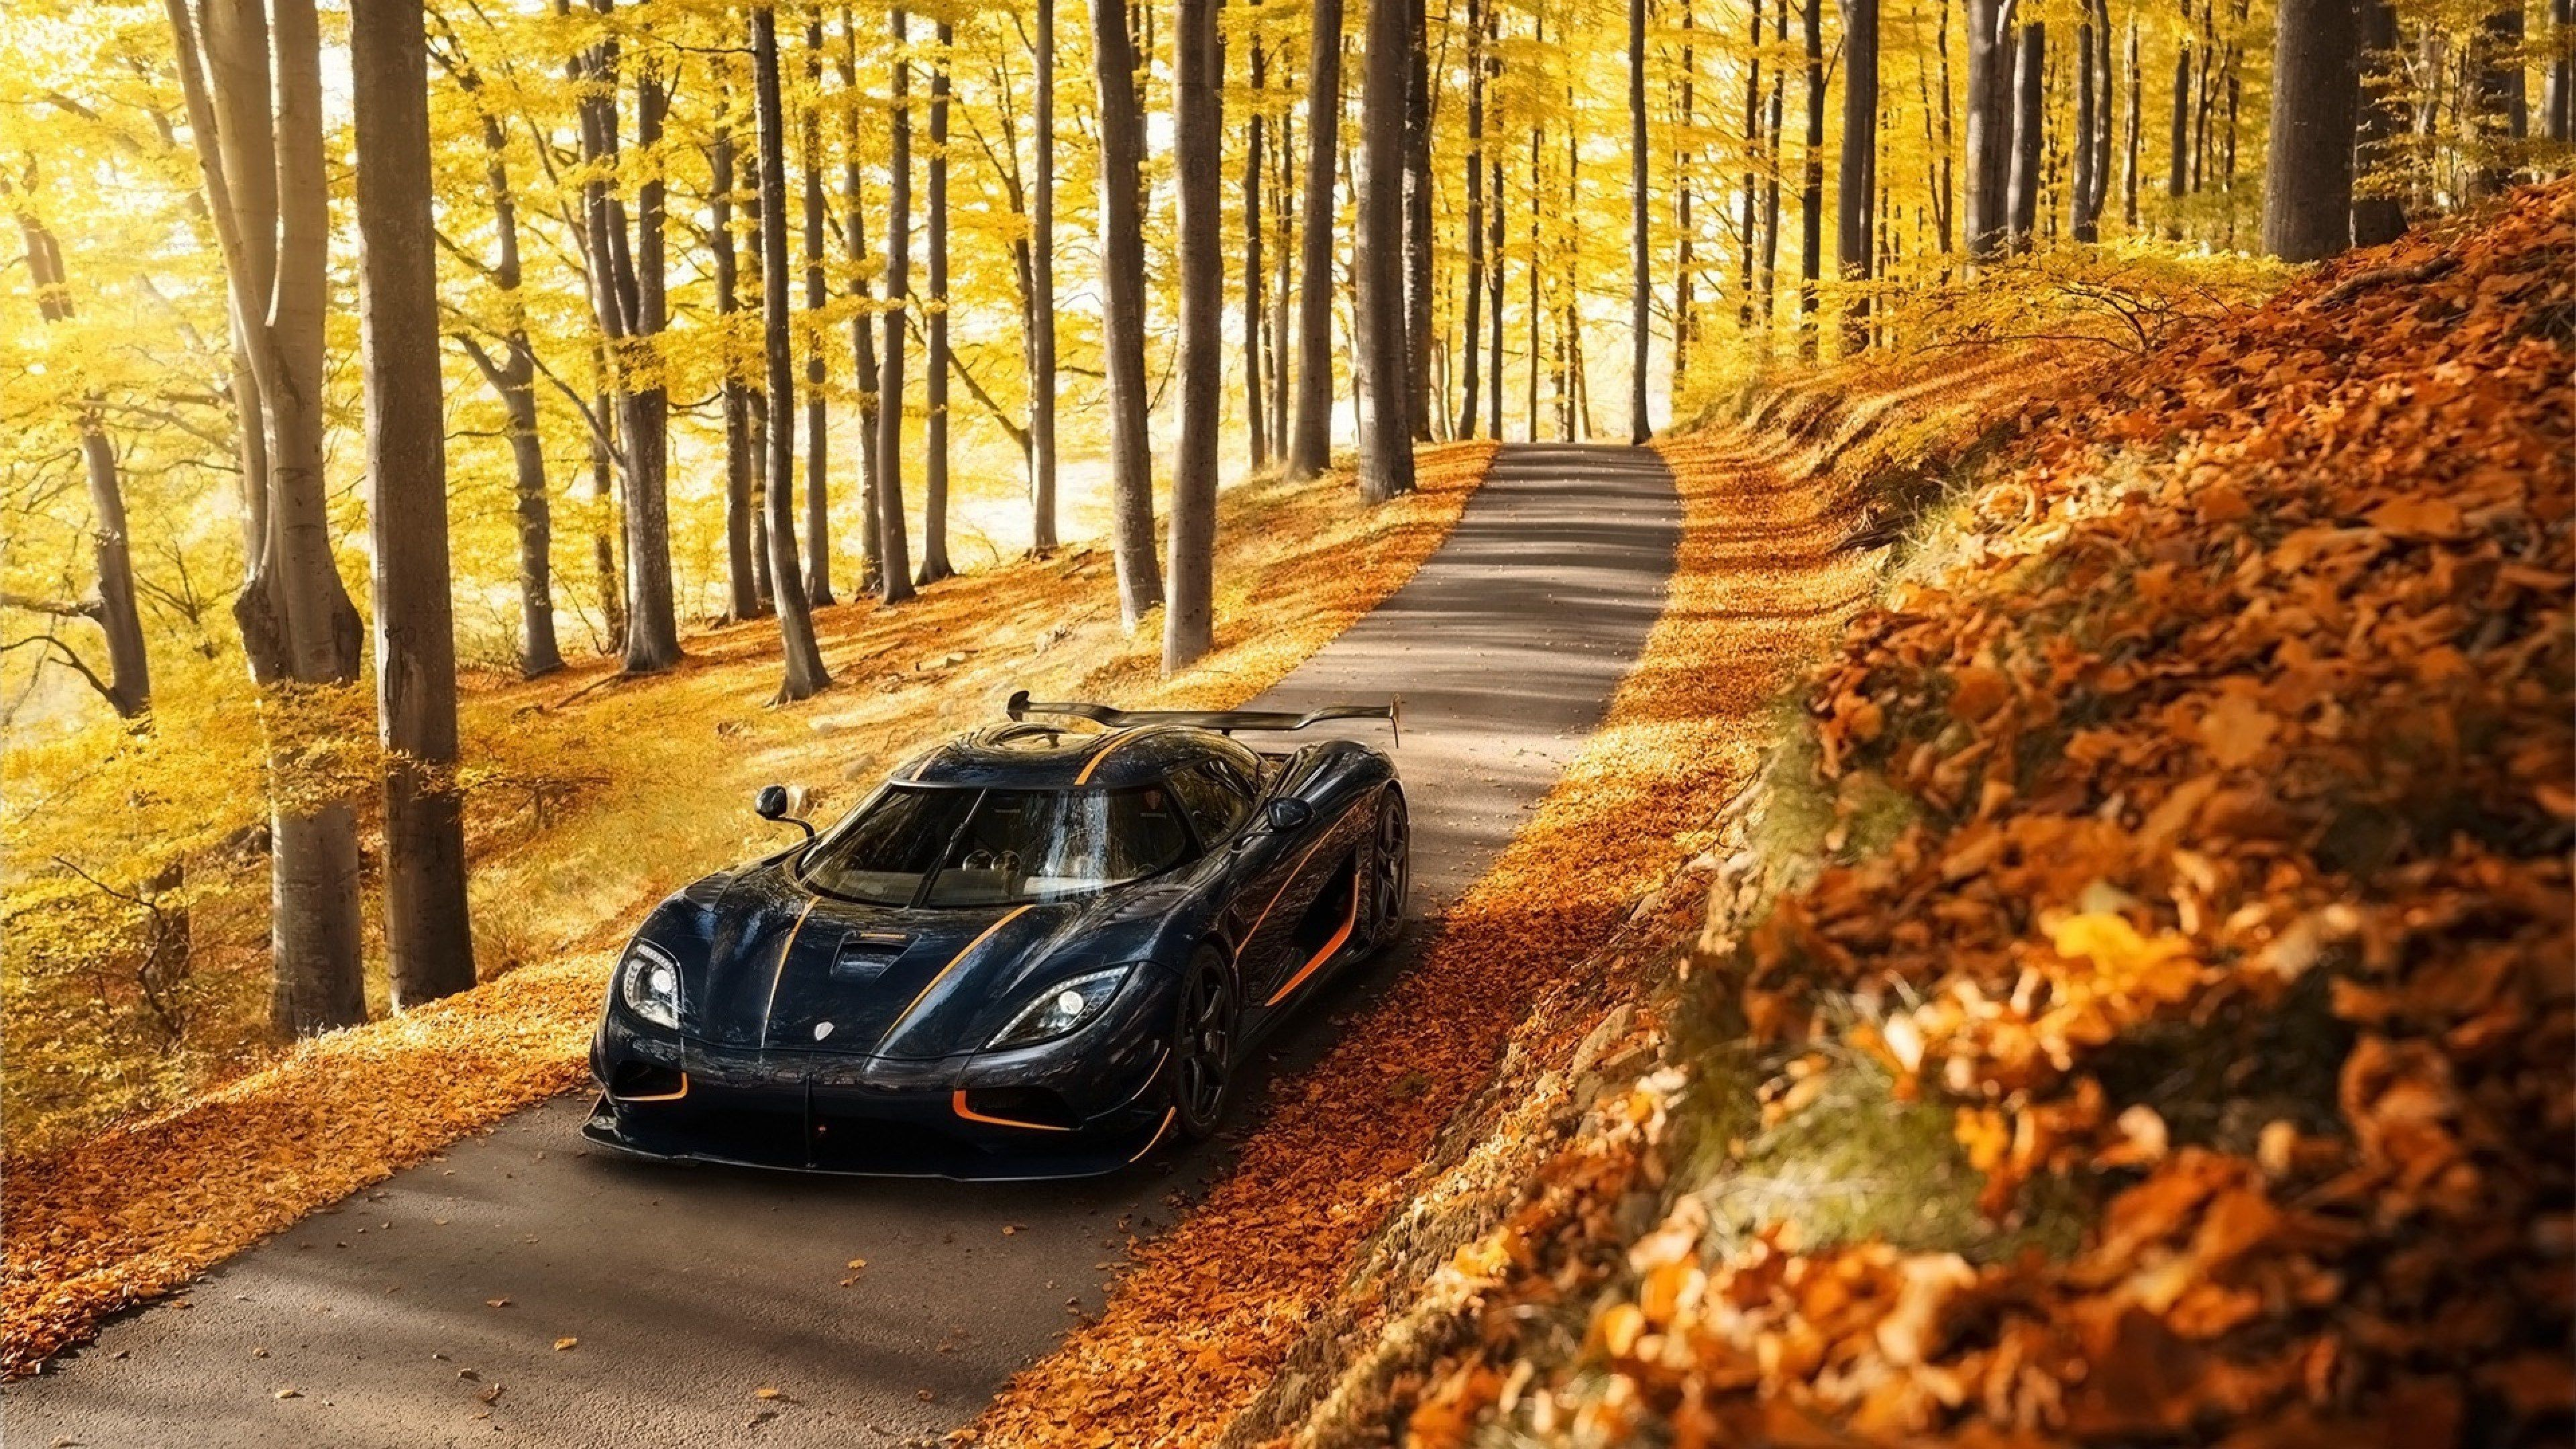 3840x2160 Koenigsegg Agera 4k Wallpaper New Hd Koenigsegg Hd